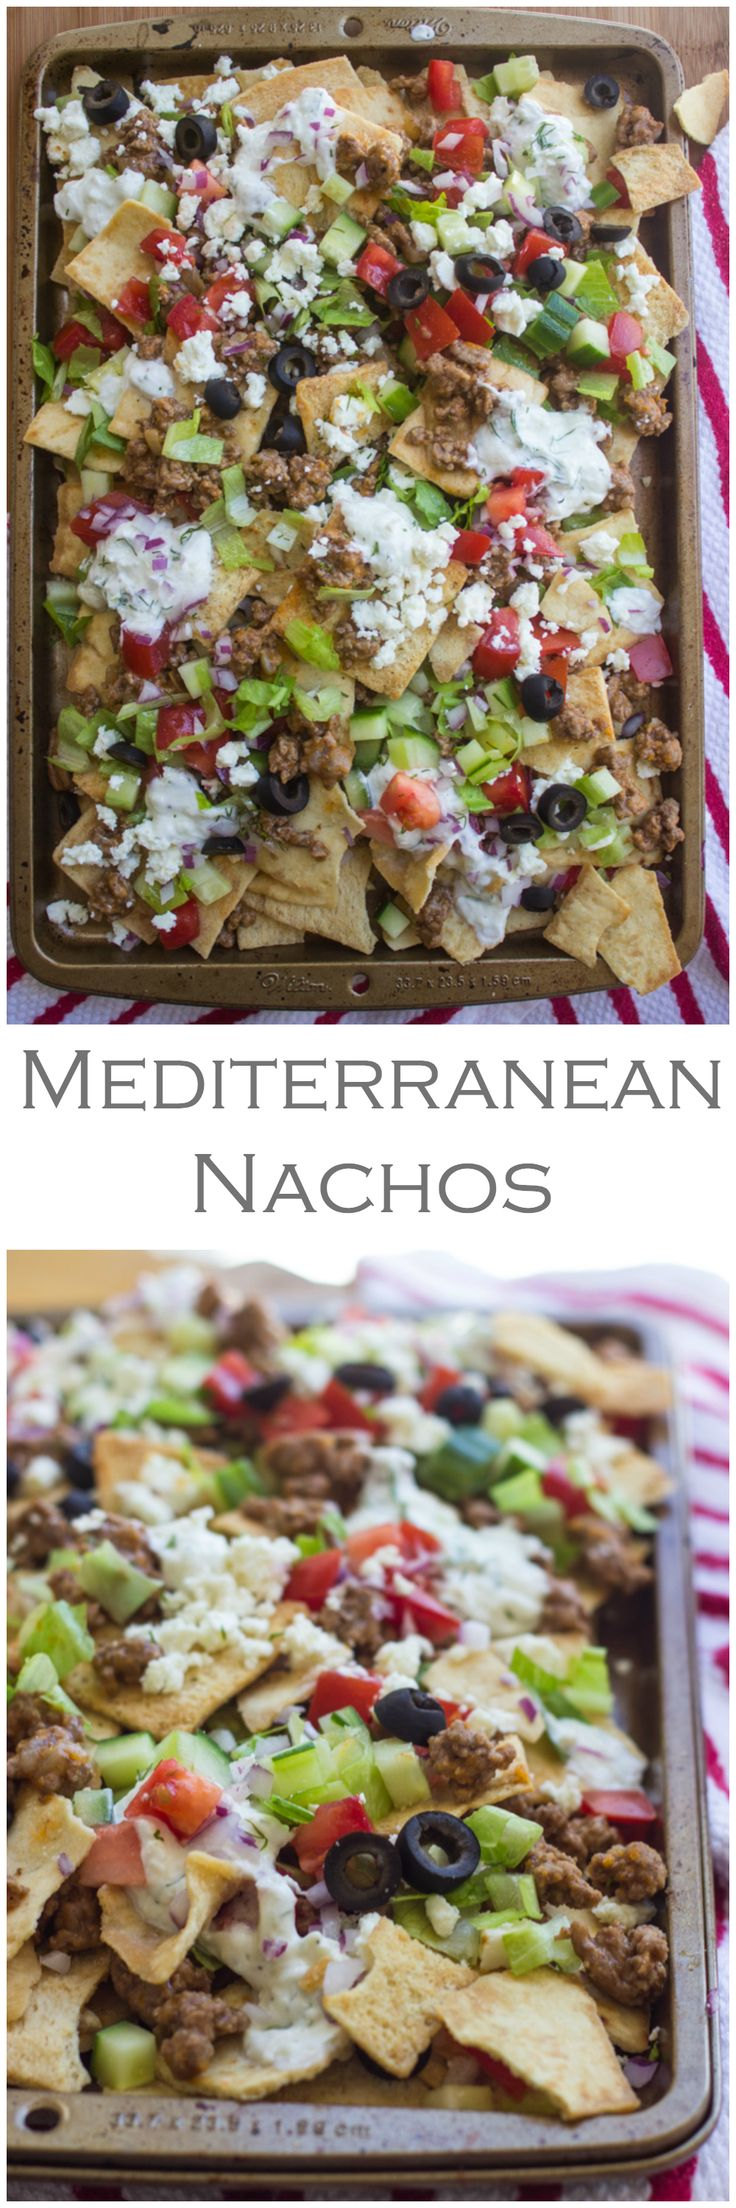 Mediterranean Nachos // layers crispy pita chips, meat, fresh veggies, feta & homemade tzatziki sauce #appetizer #movienight